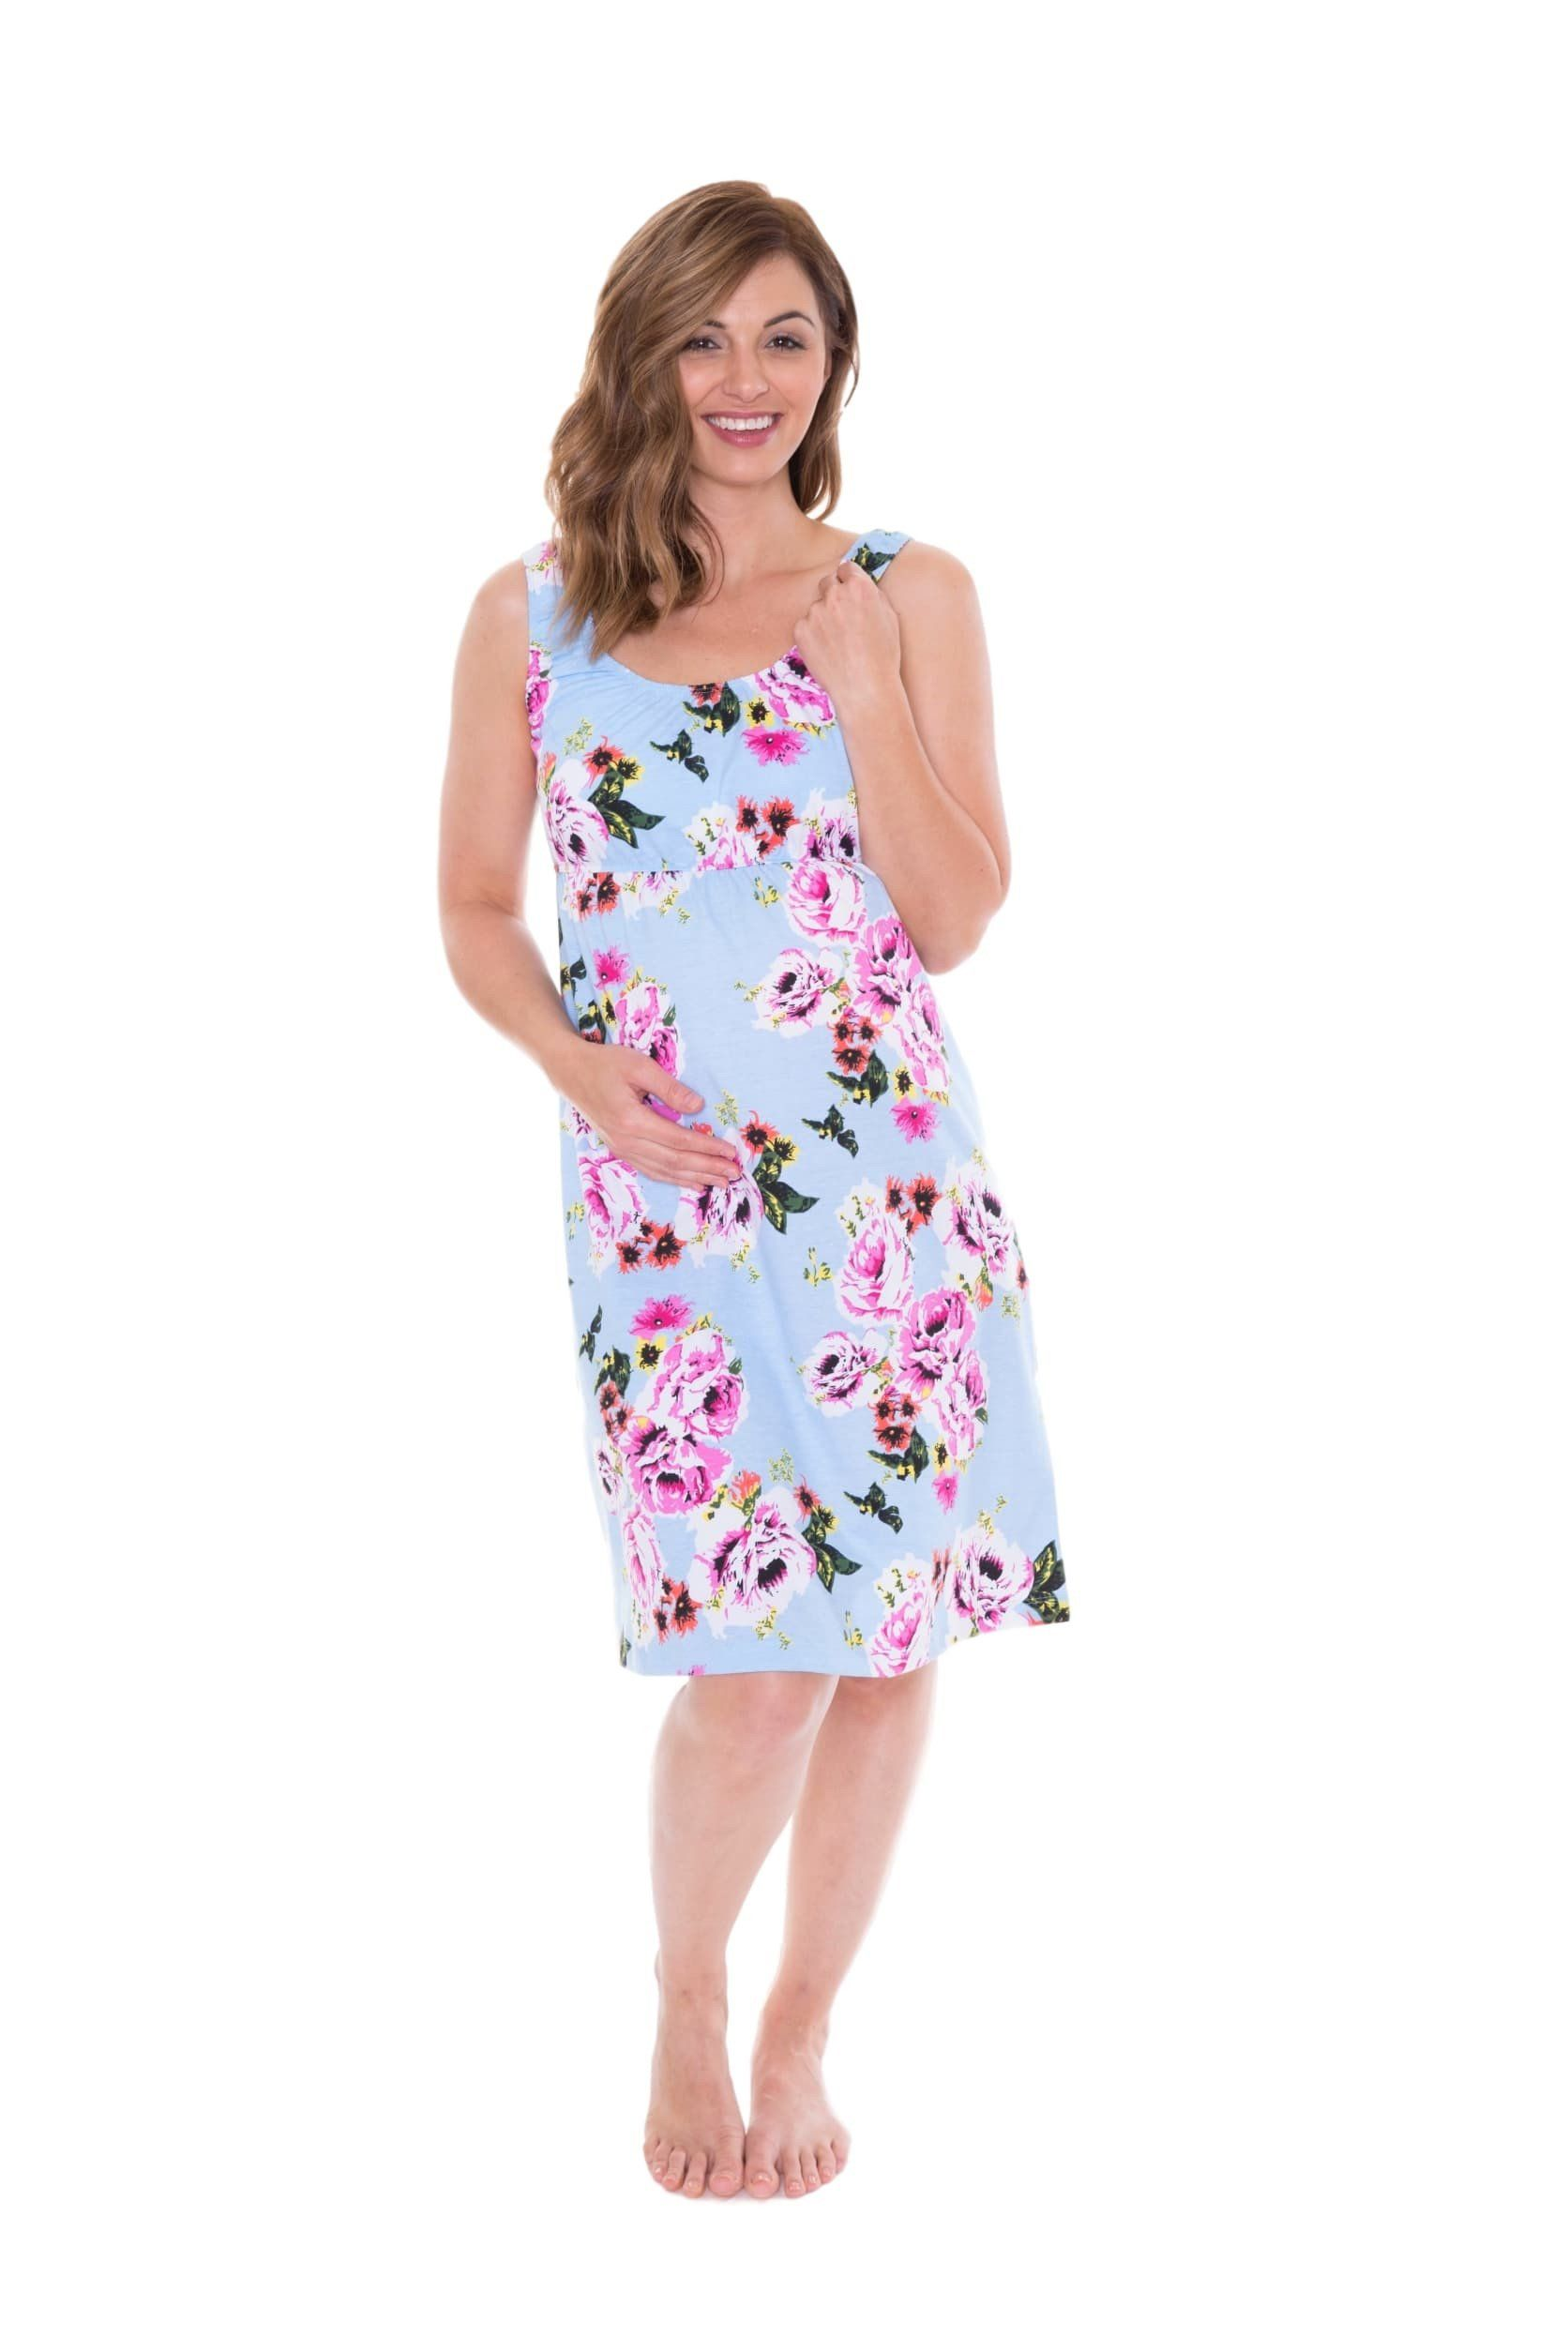 4947ac75b2 This pretty maternity nursing nightdress is designed to make you feel  gorgeous yet comfortable   stylish as your bump grows. Chic